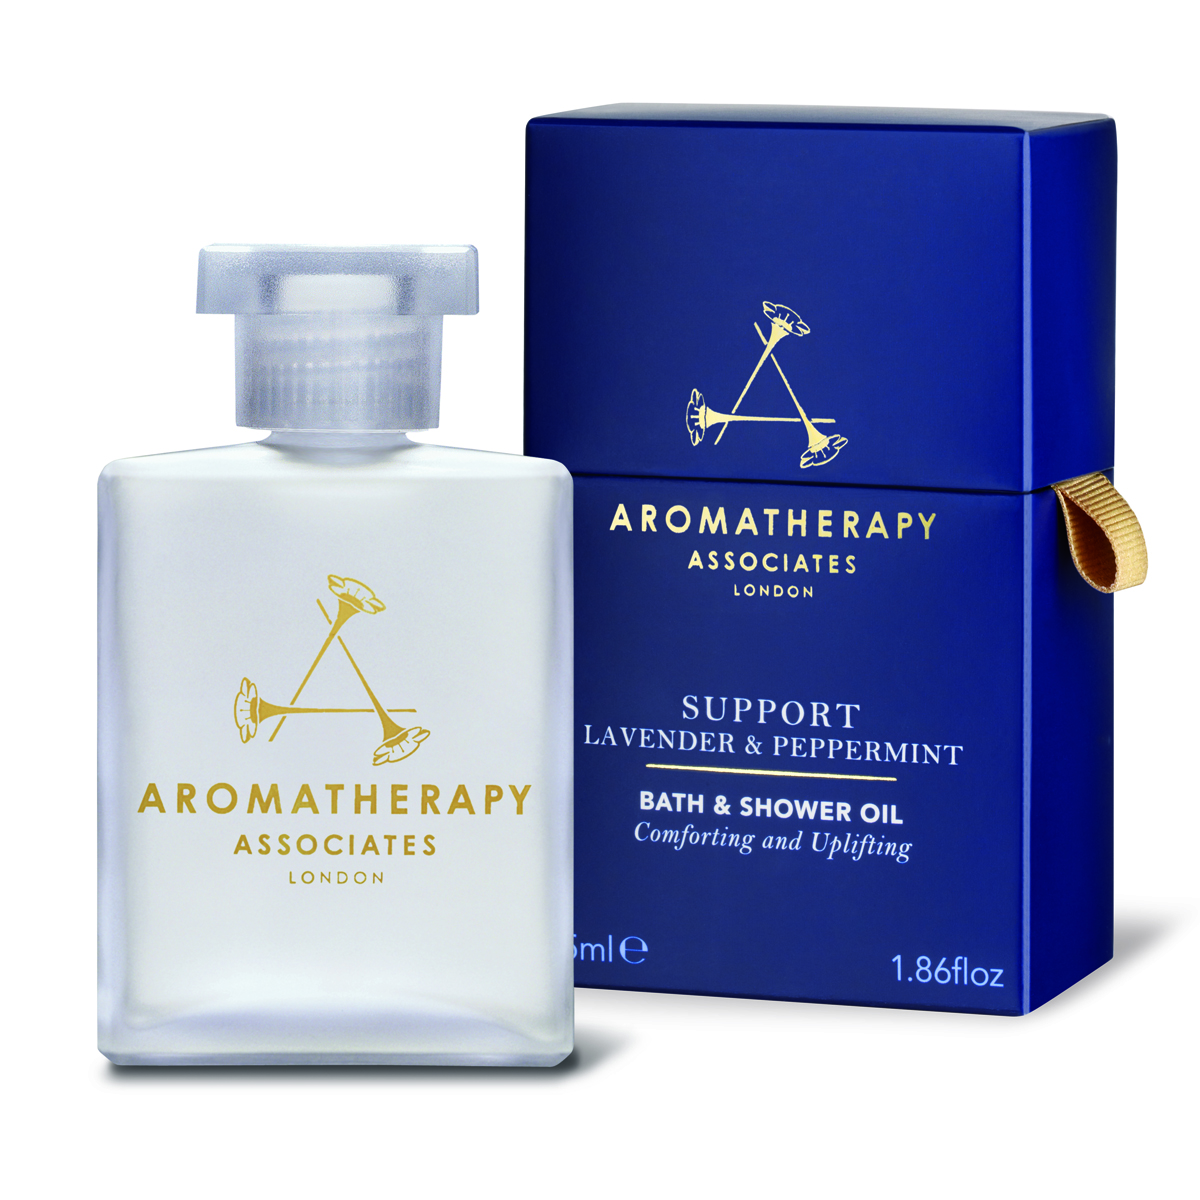 Friday Treat Competition Win Aromatherapy Associates Hydration Collection pics